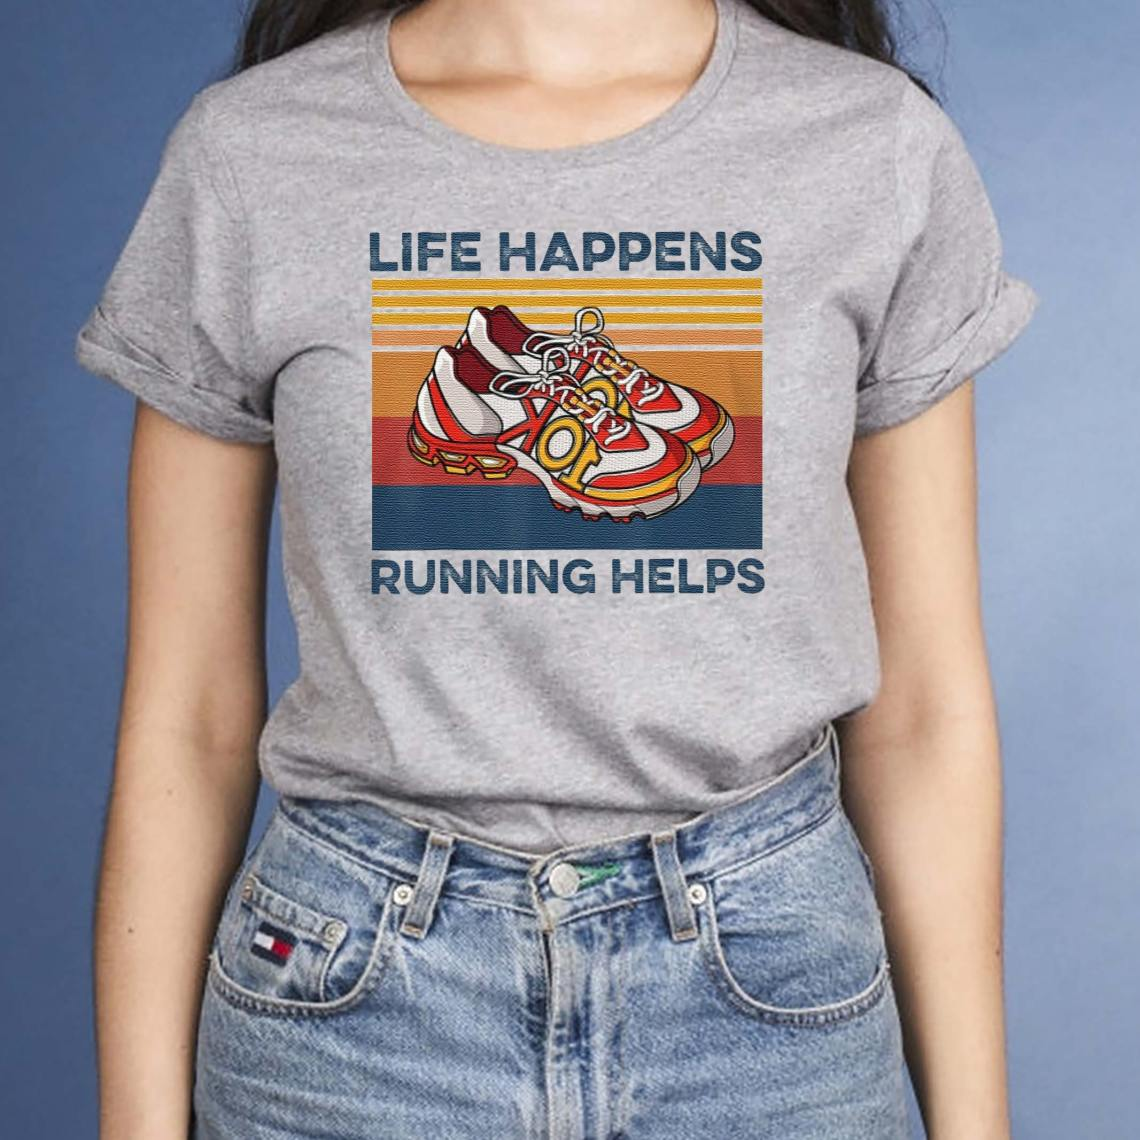 Life-Happens-Running-Helps-Funny-T-Shirt